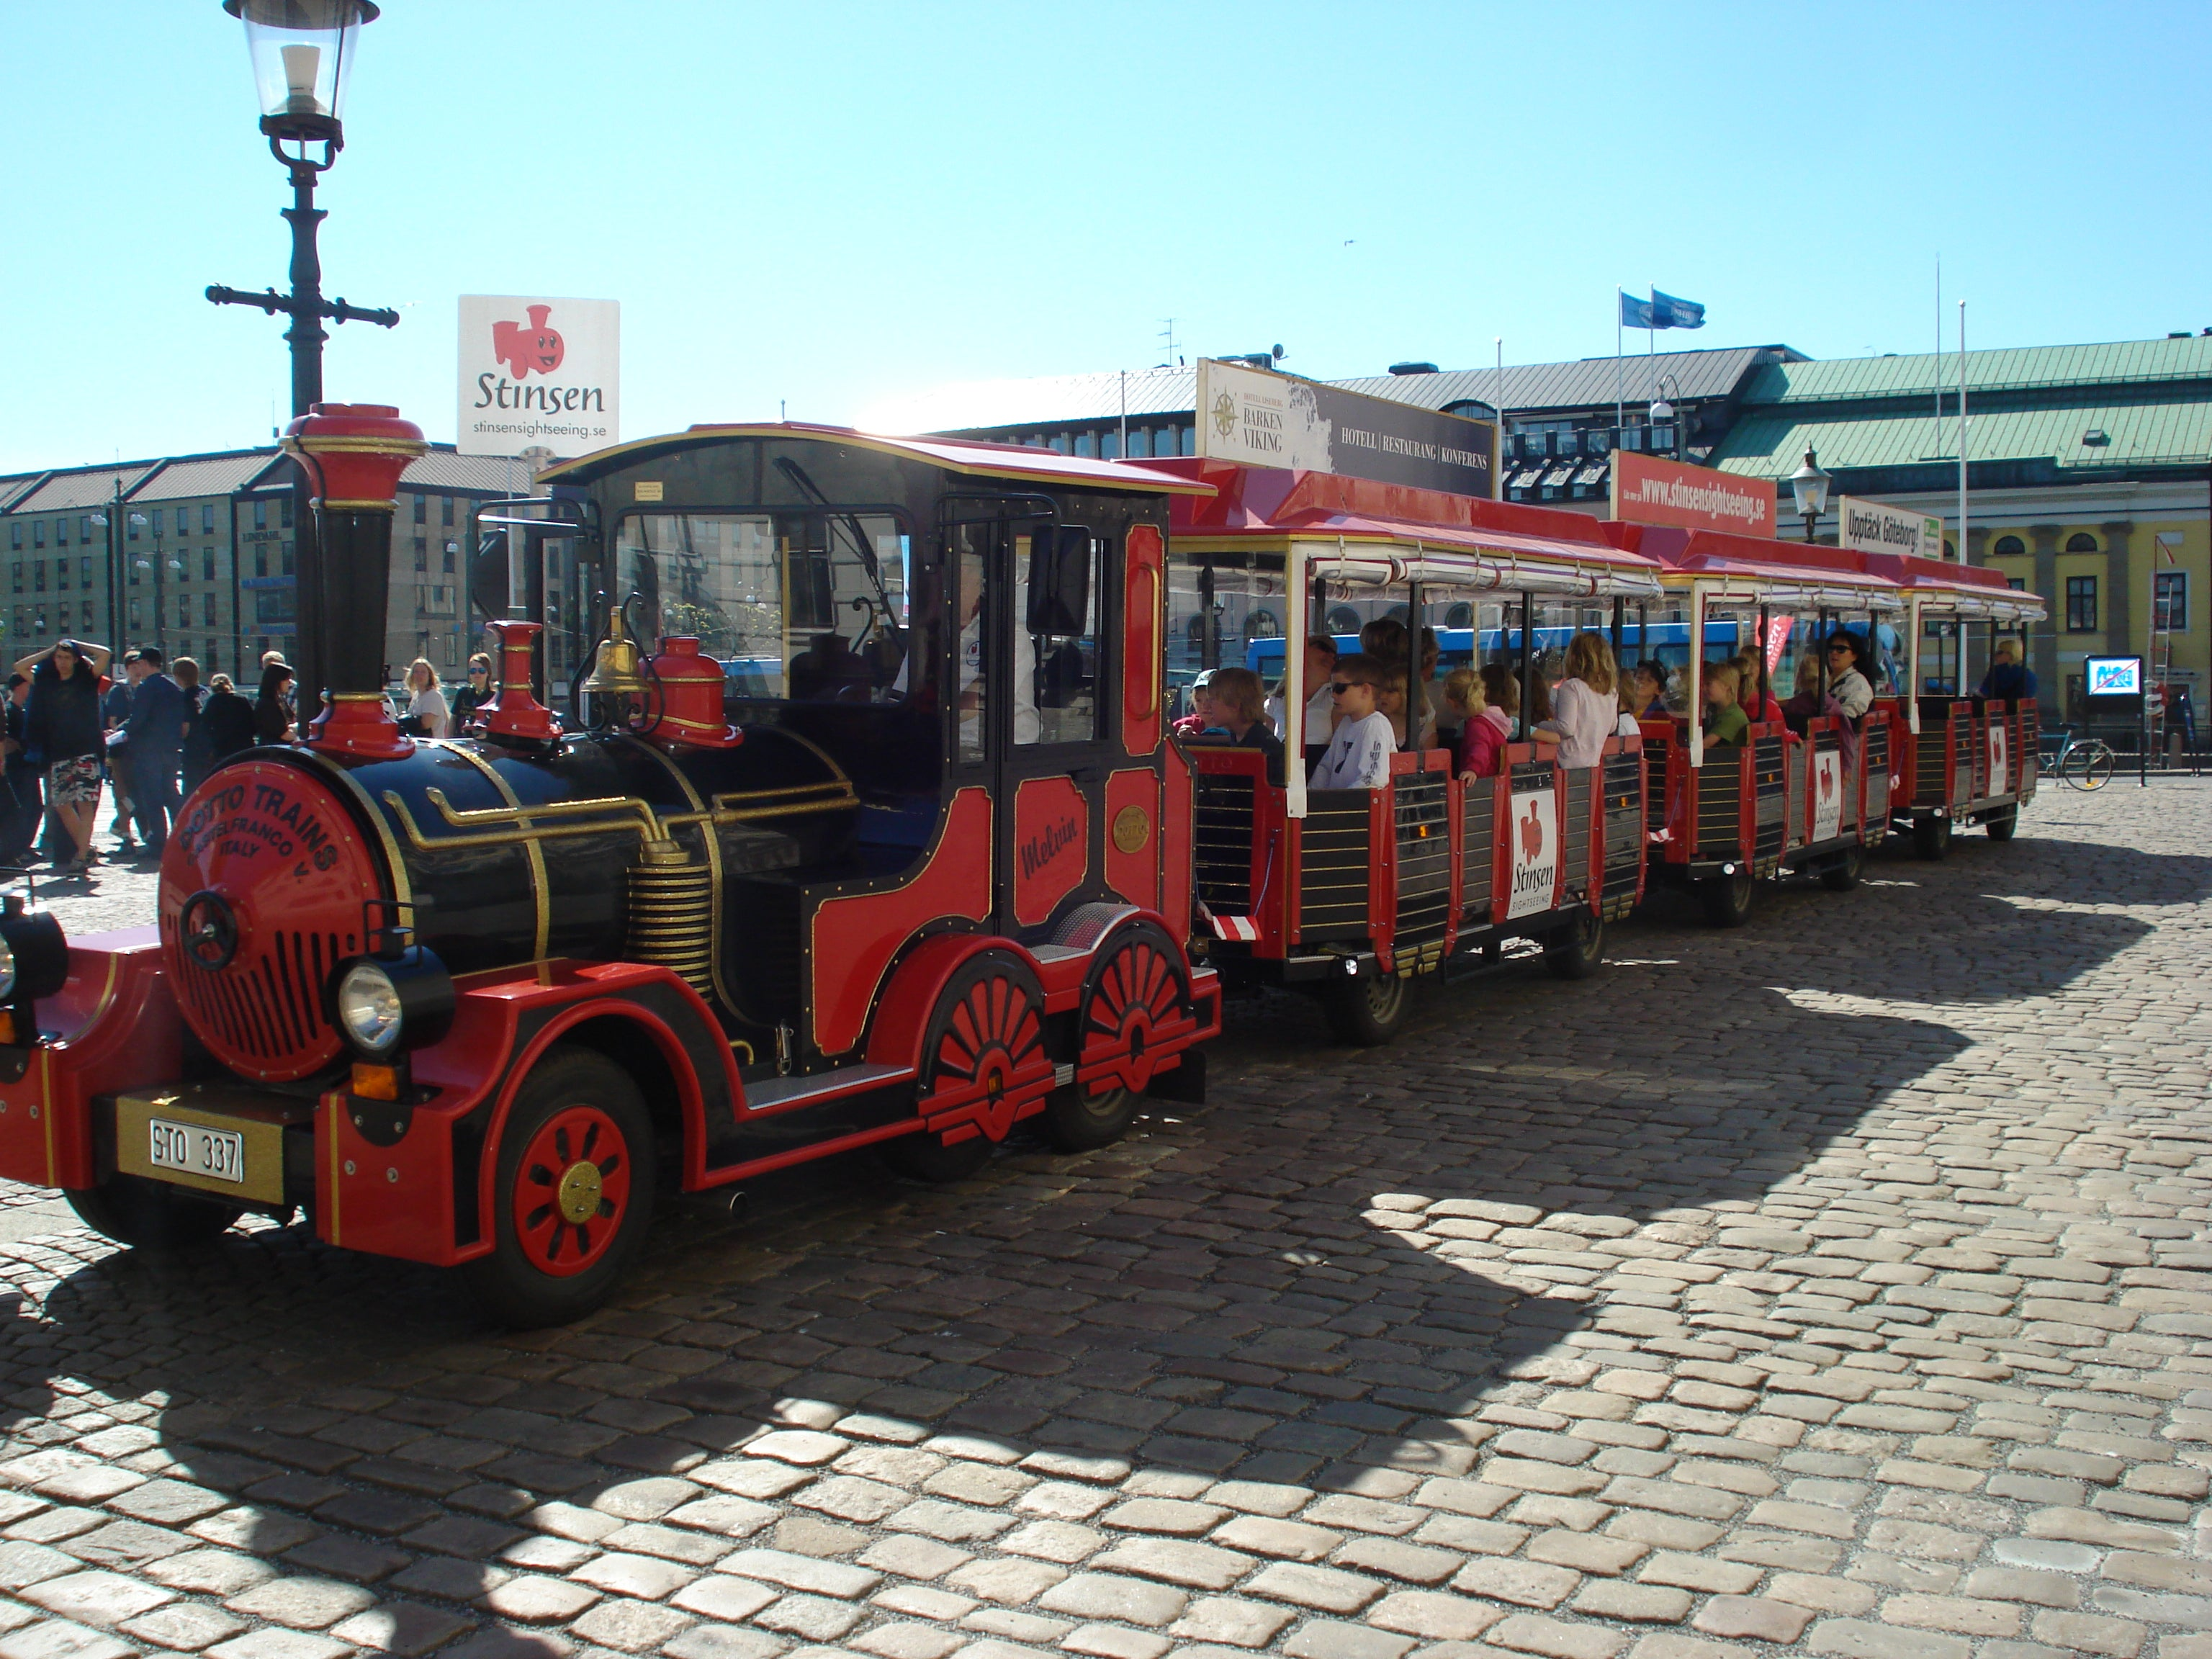 Stinsen Sightseeing Train